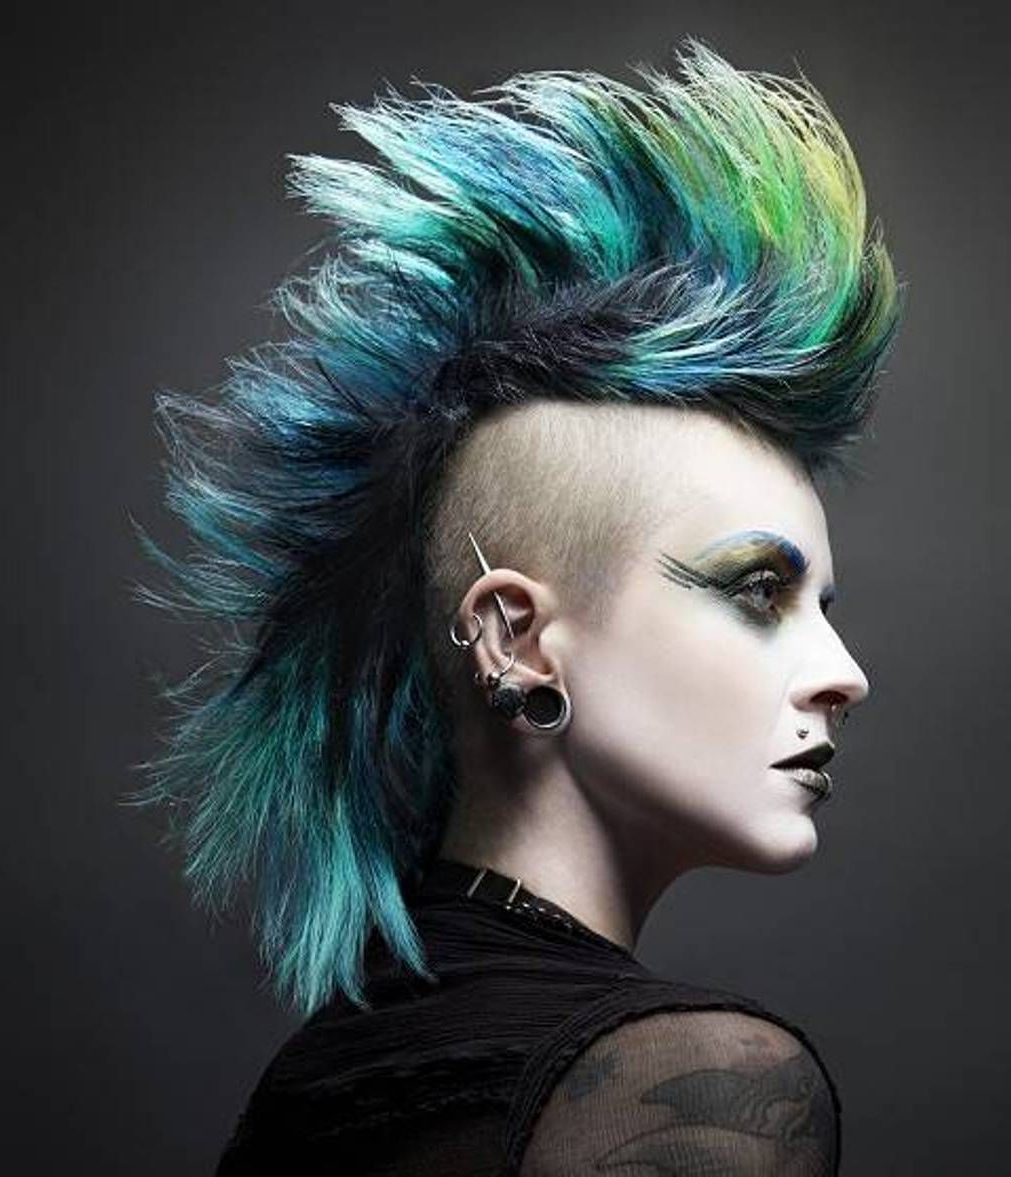 Well Known Punk Rock Princess Faux Hawk Hairstyles In The New Punk Mens Hairstyles Still Retain The Rebellious Look, But (View 19 of 20)